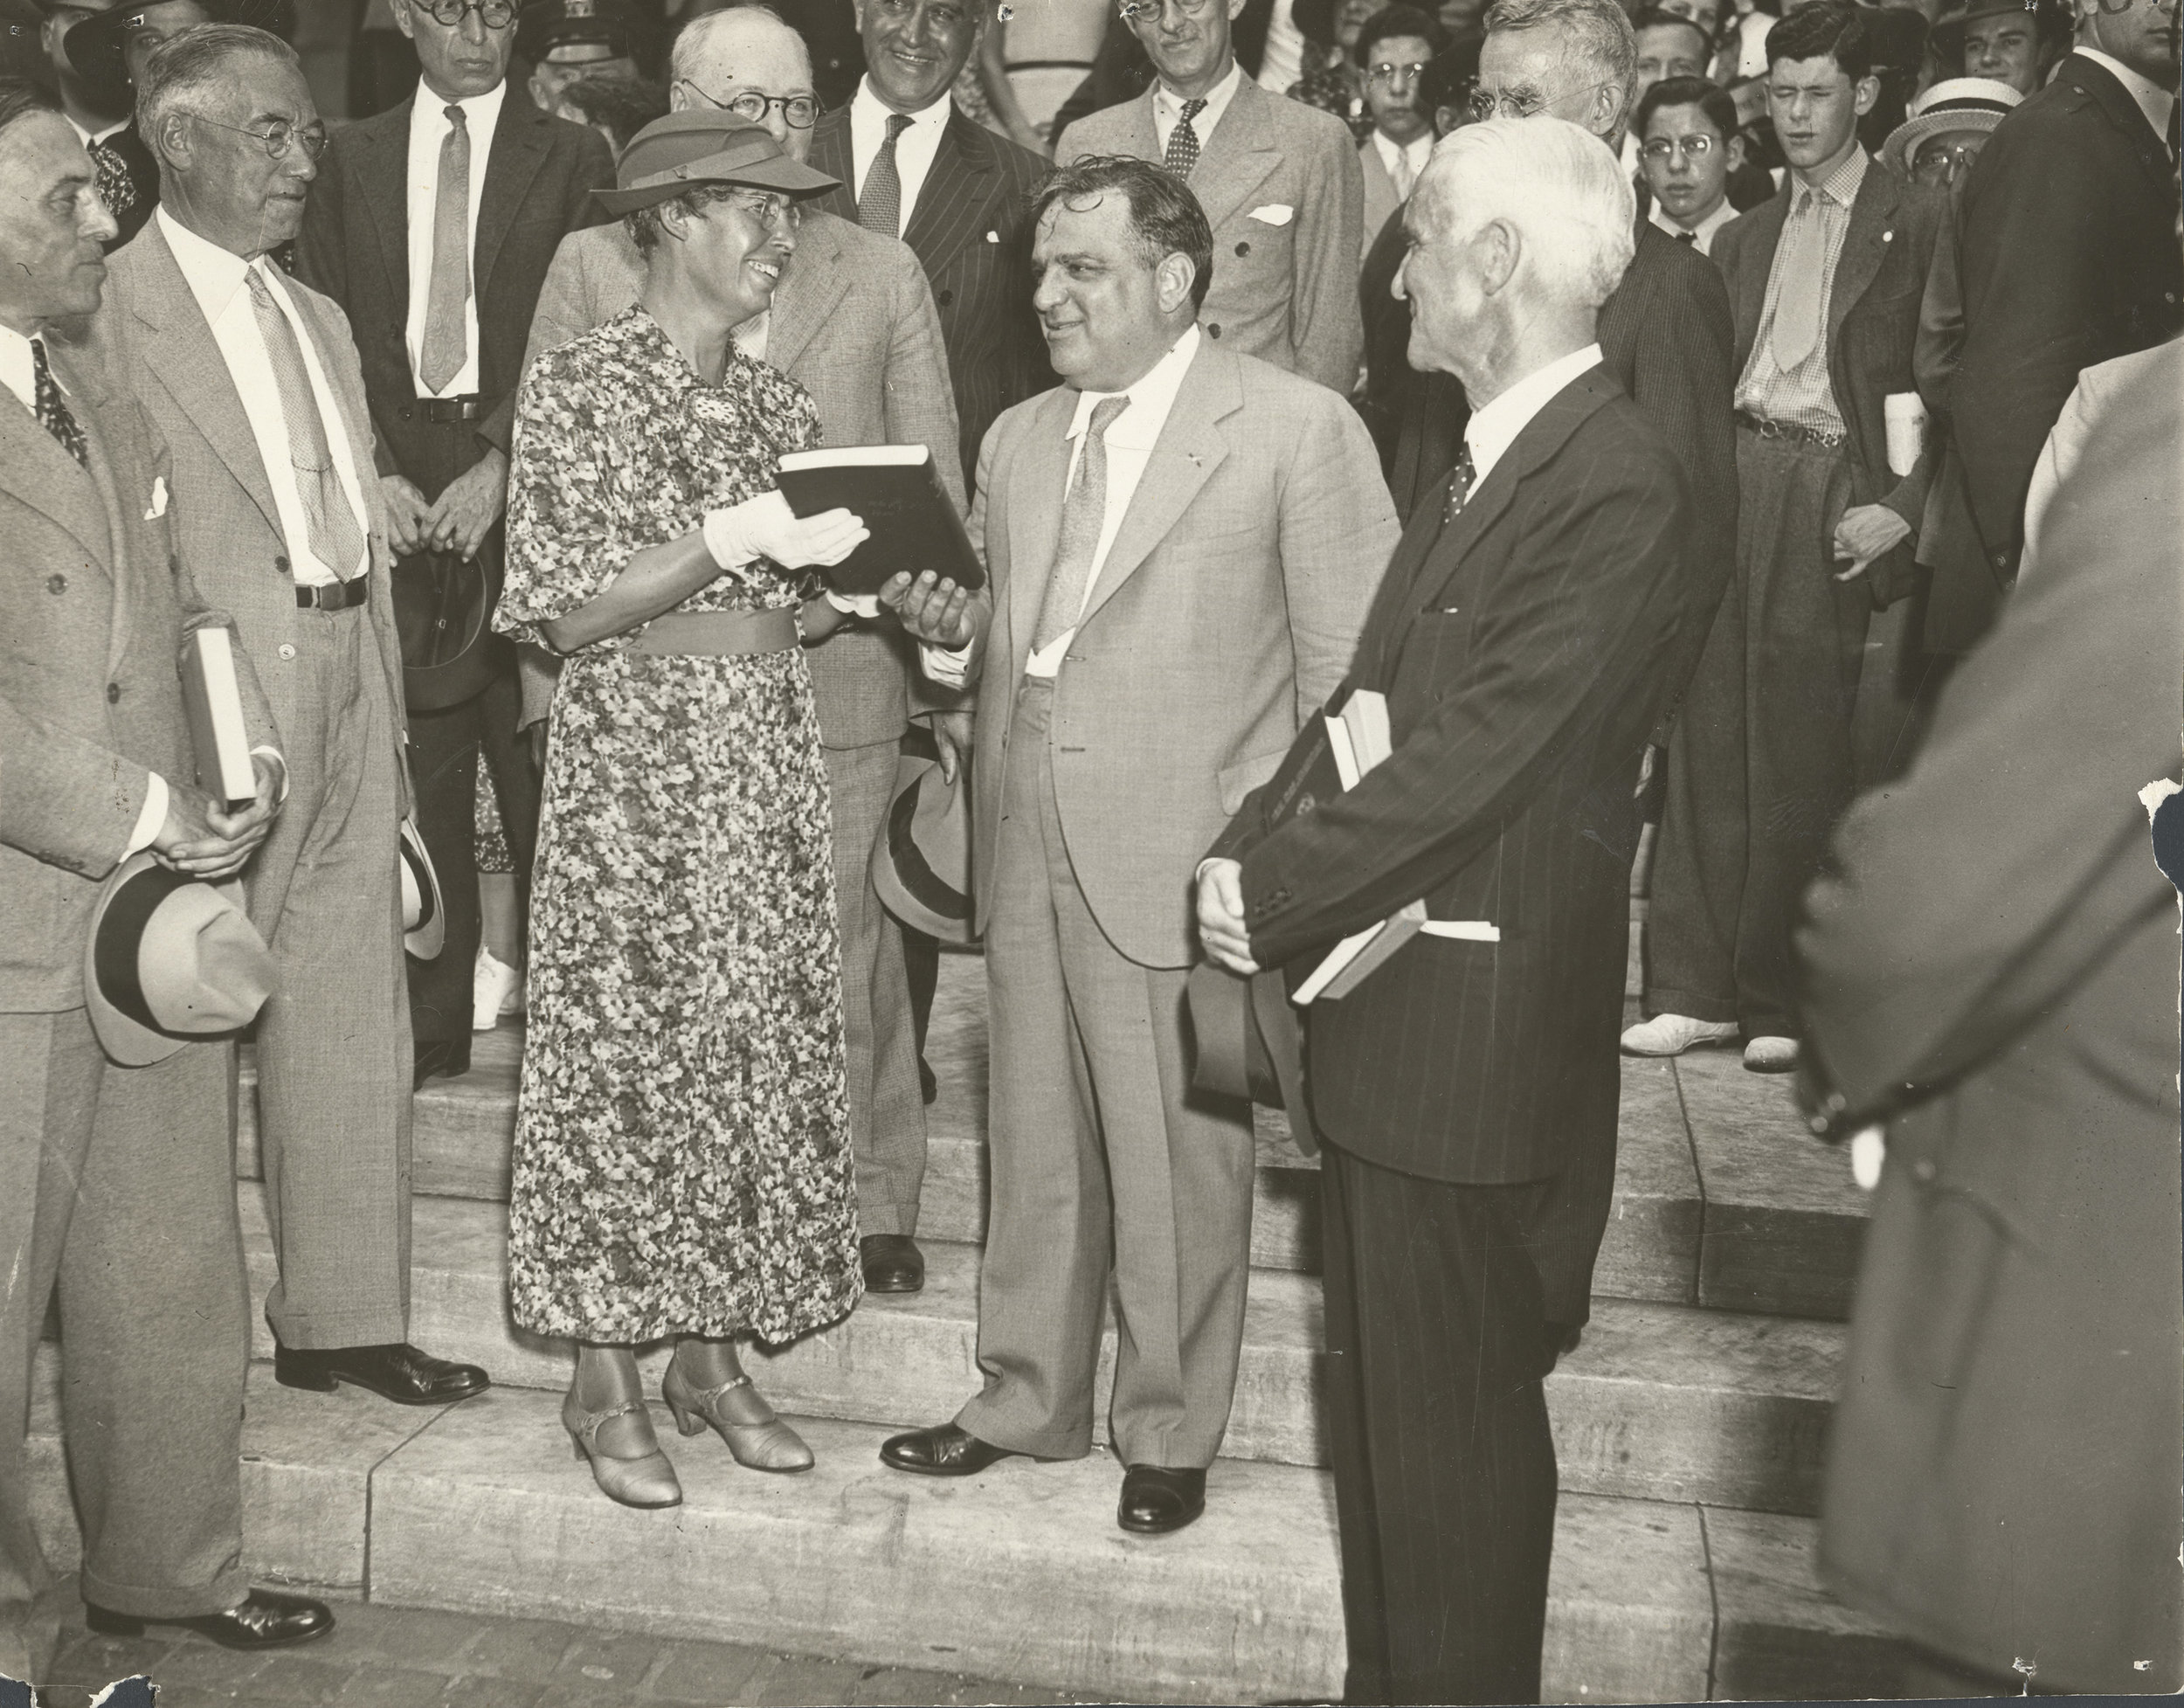 Rebecca Rankin presenting Mayor LaGuardia with the first copy of of her book  New York Advancing  during a ceremony on the steps of the New York Public Library, 1936. Rebecca Rankin Papers, NYC Municipal Archives.